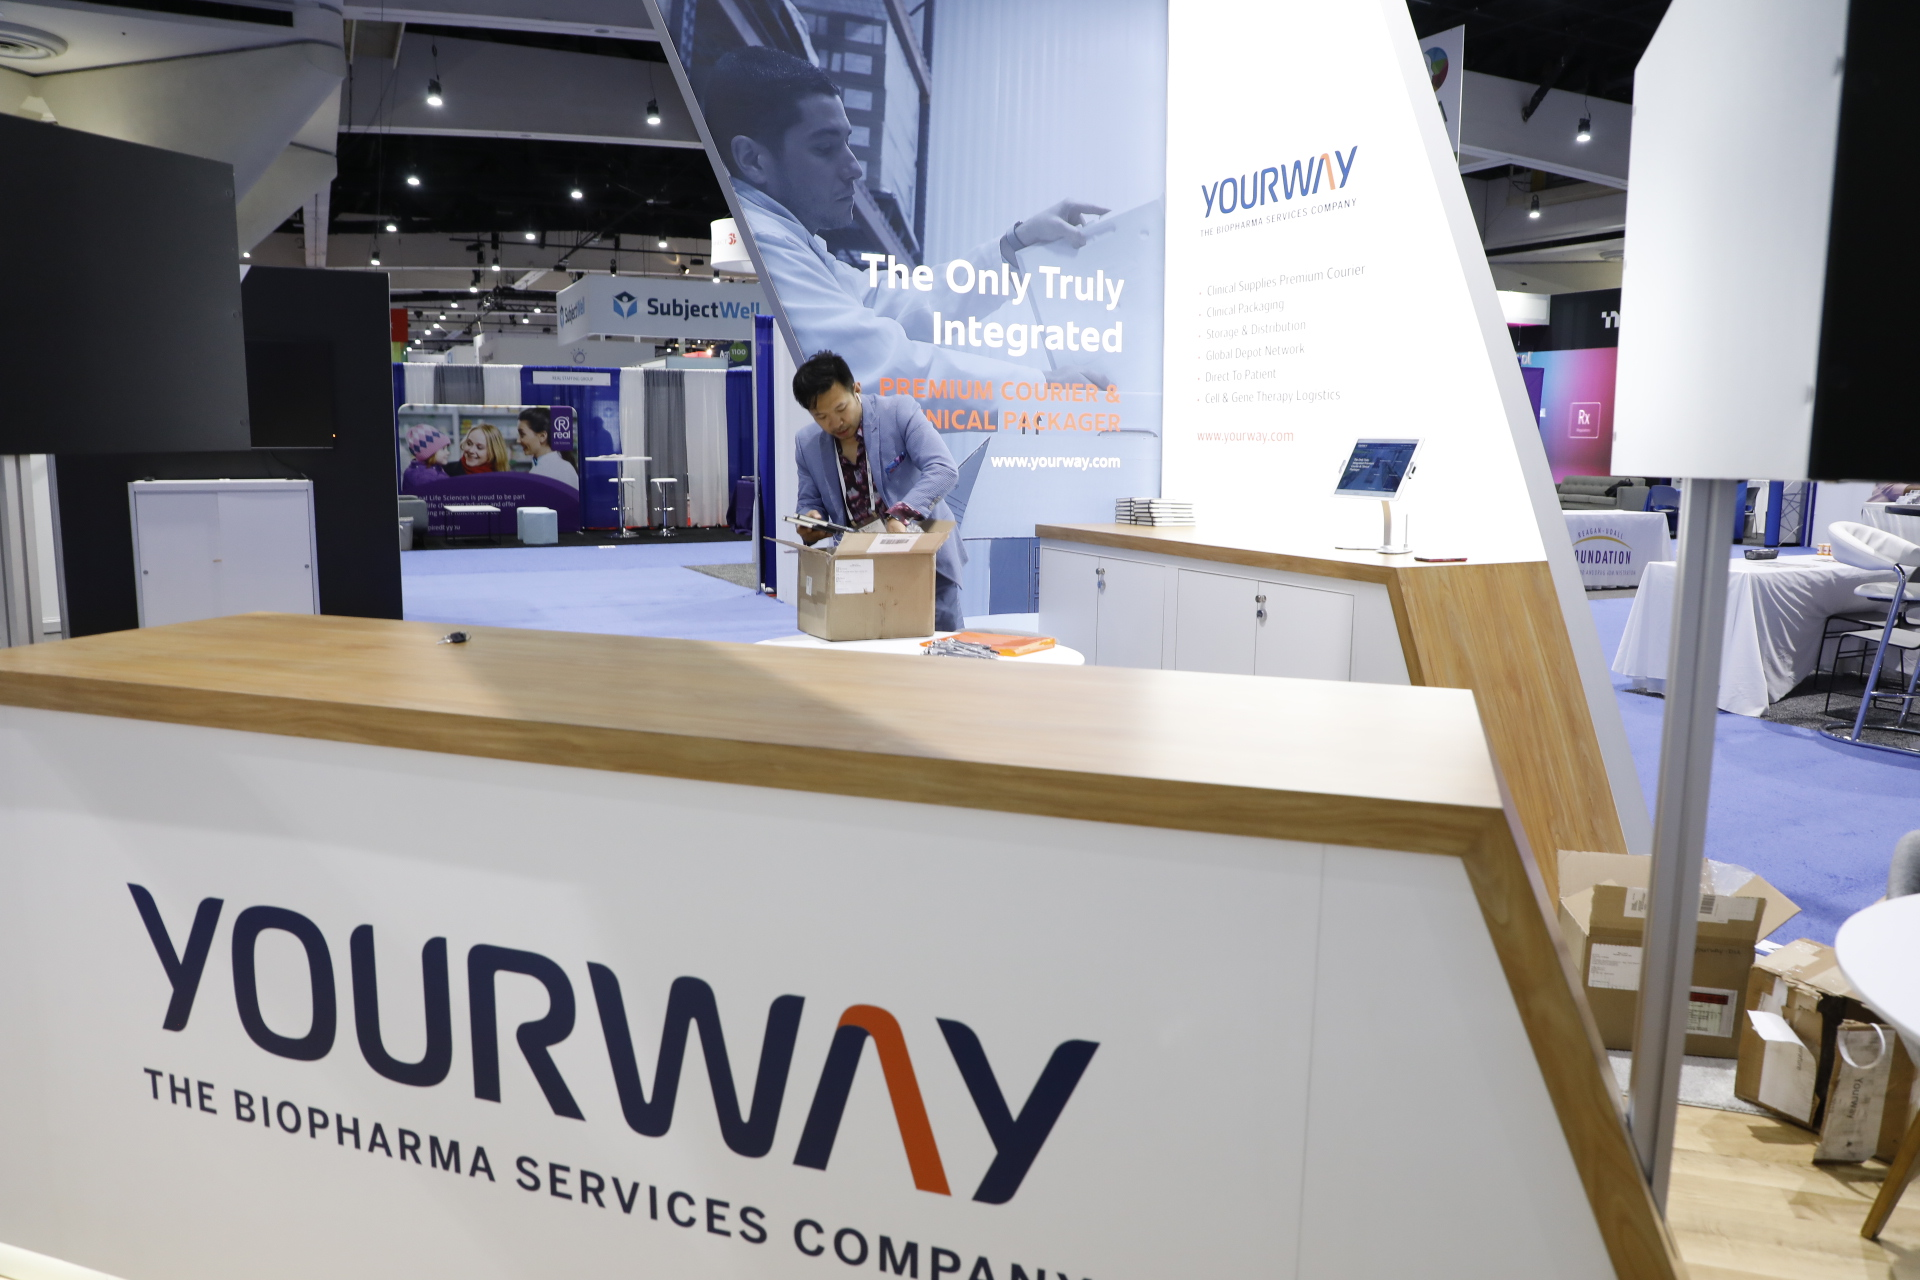 The DIA Yourway Booth